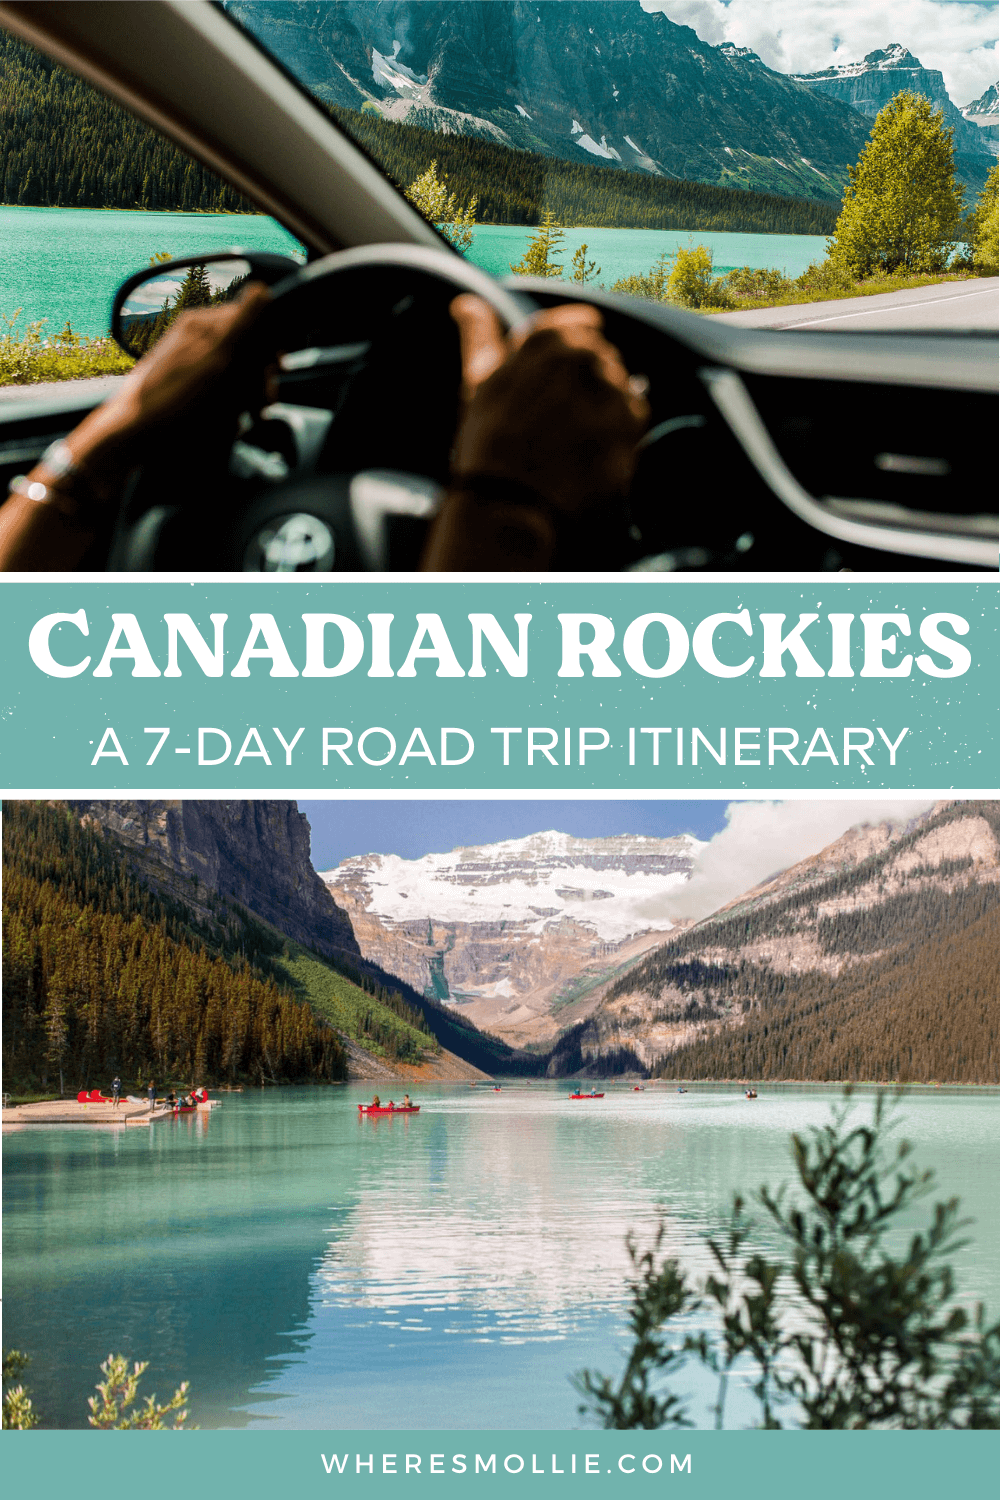 A 7-day Canadian Rockies road trip itinerary